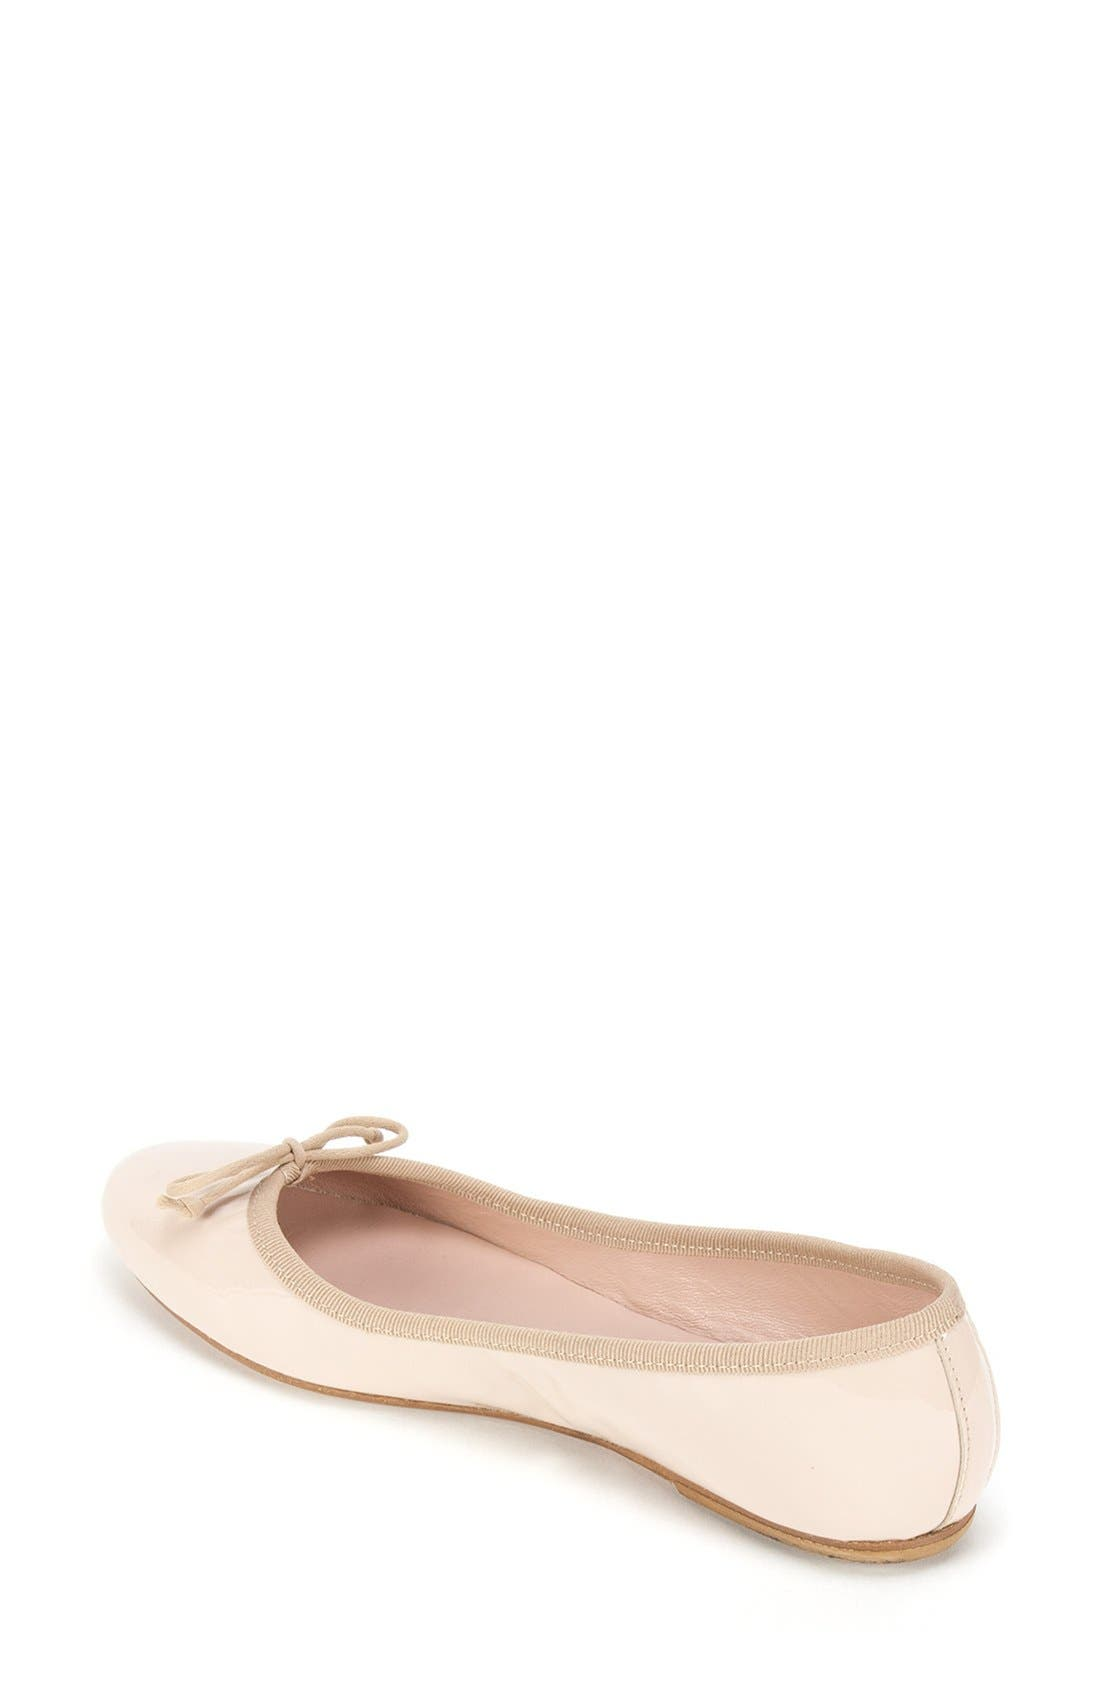 'Kendall' Ballet Flat,                             Alternate thumbnail 2, color,                             Nude Patent Leather